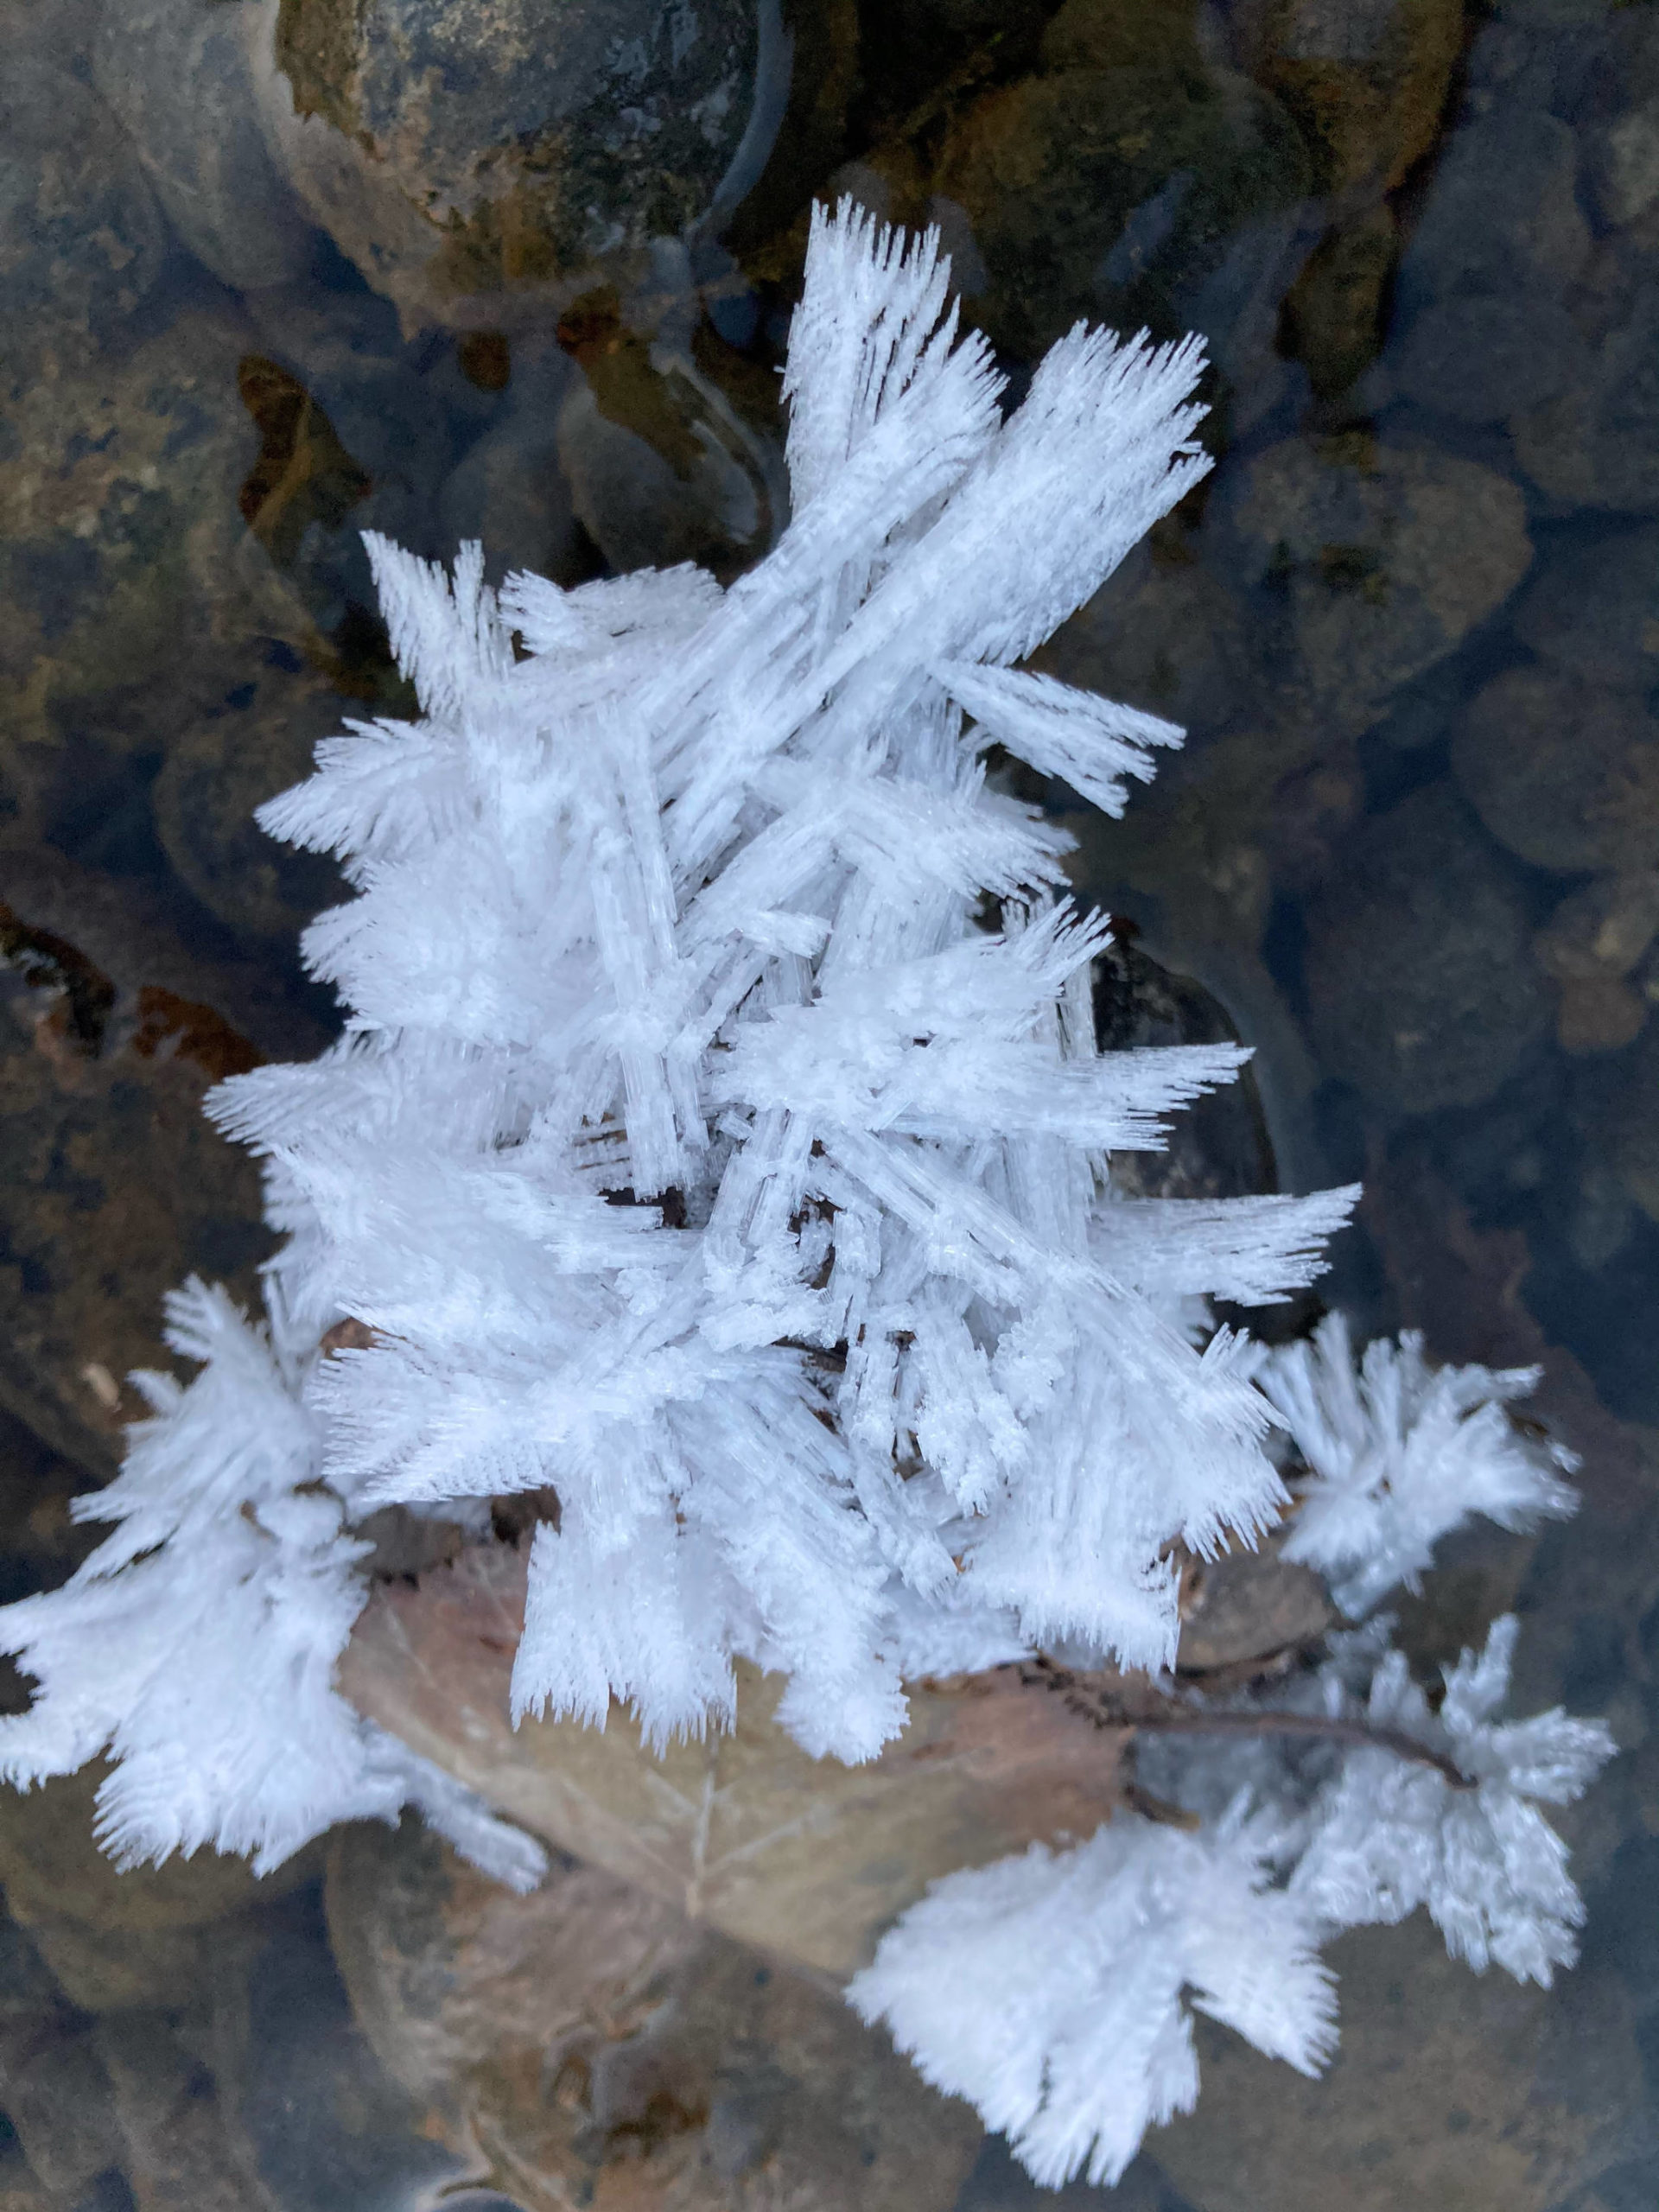 Snow flowers are seen along the Mendenhall River on Nov. 17. (Courtesy Photo / Deborah Rudis)